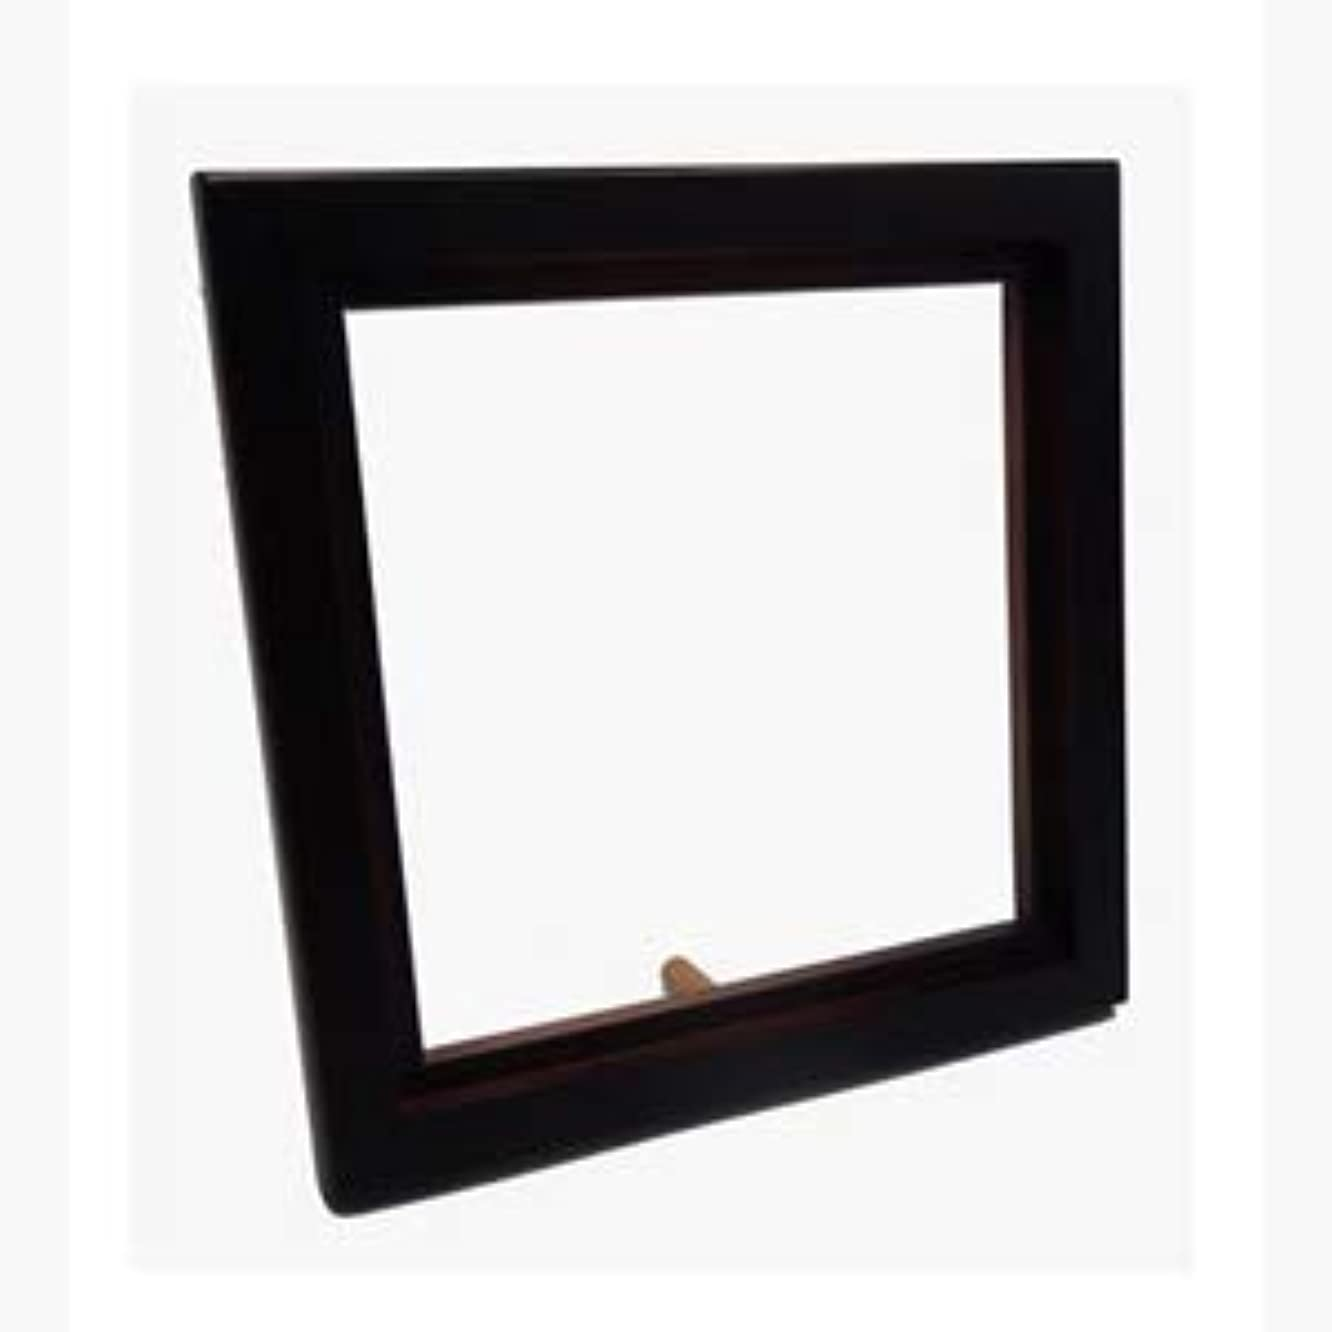 SFS BLANK Wooden Dark Brown Photo Frame Sublimation Heat Transfer 6x6 inches 10x10cm